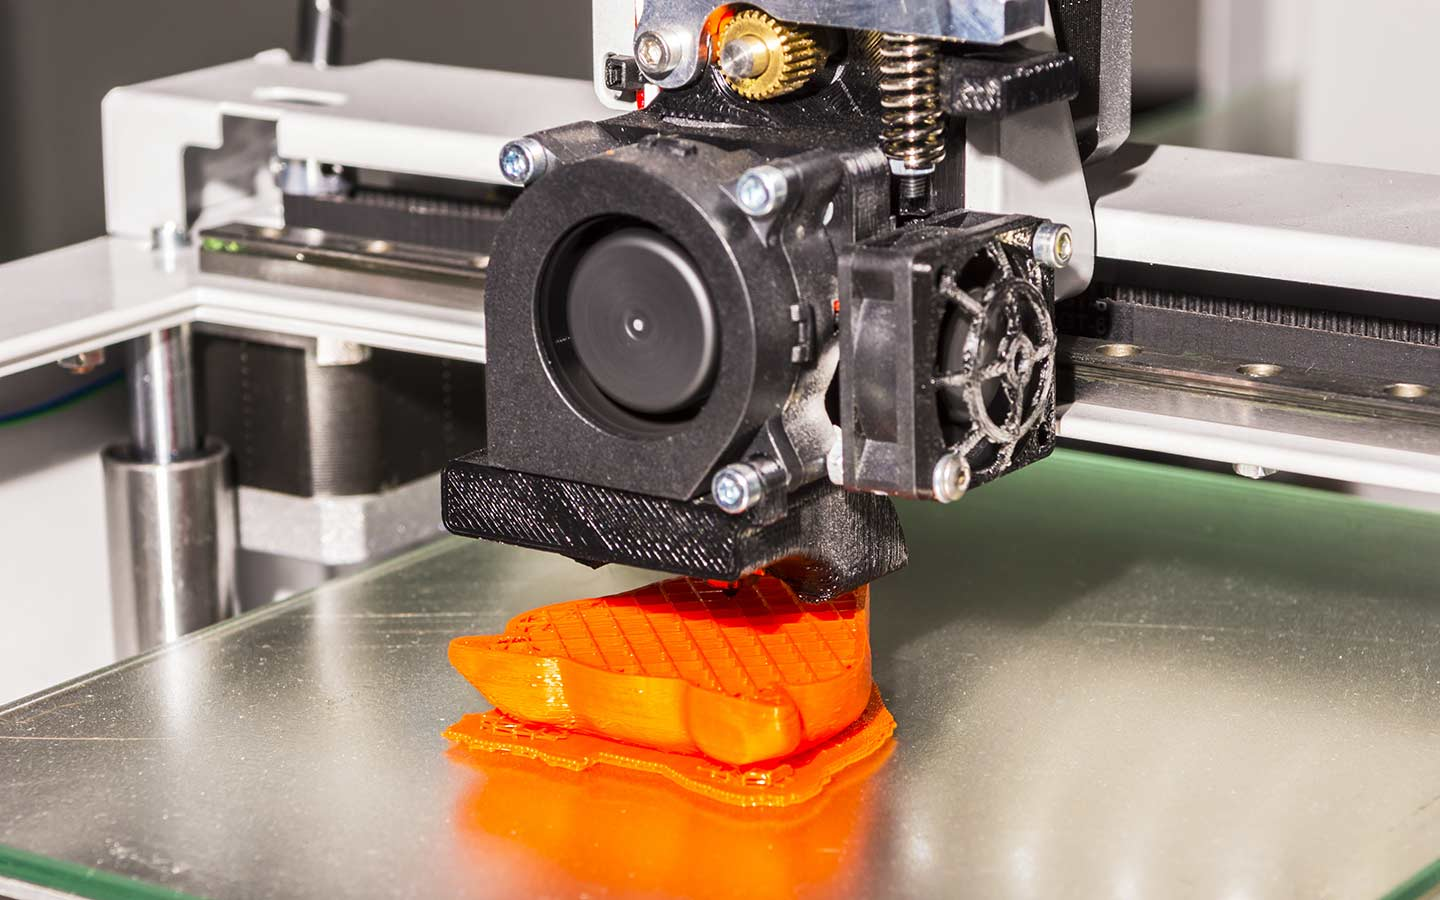 design considerations for additive manufacturing